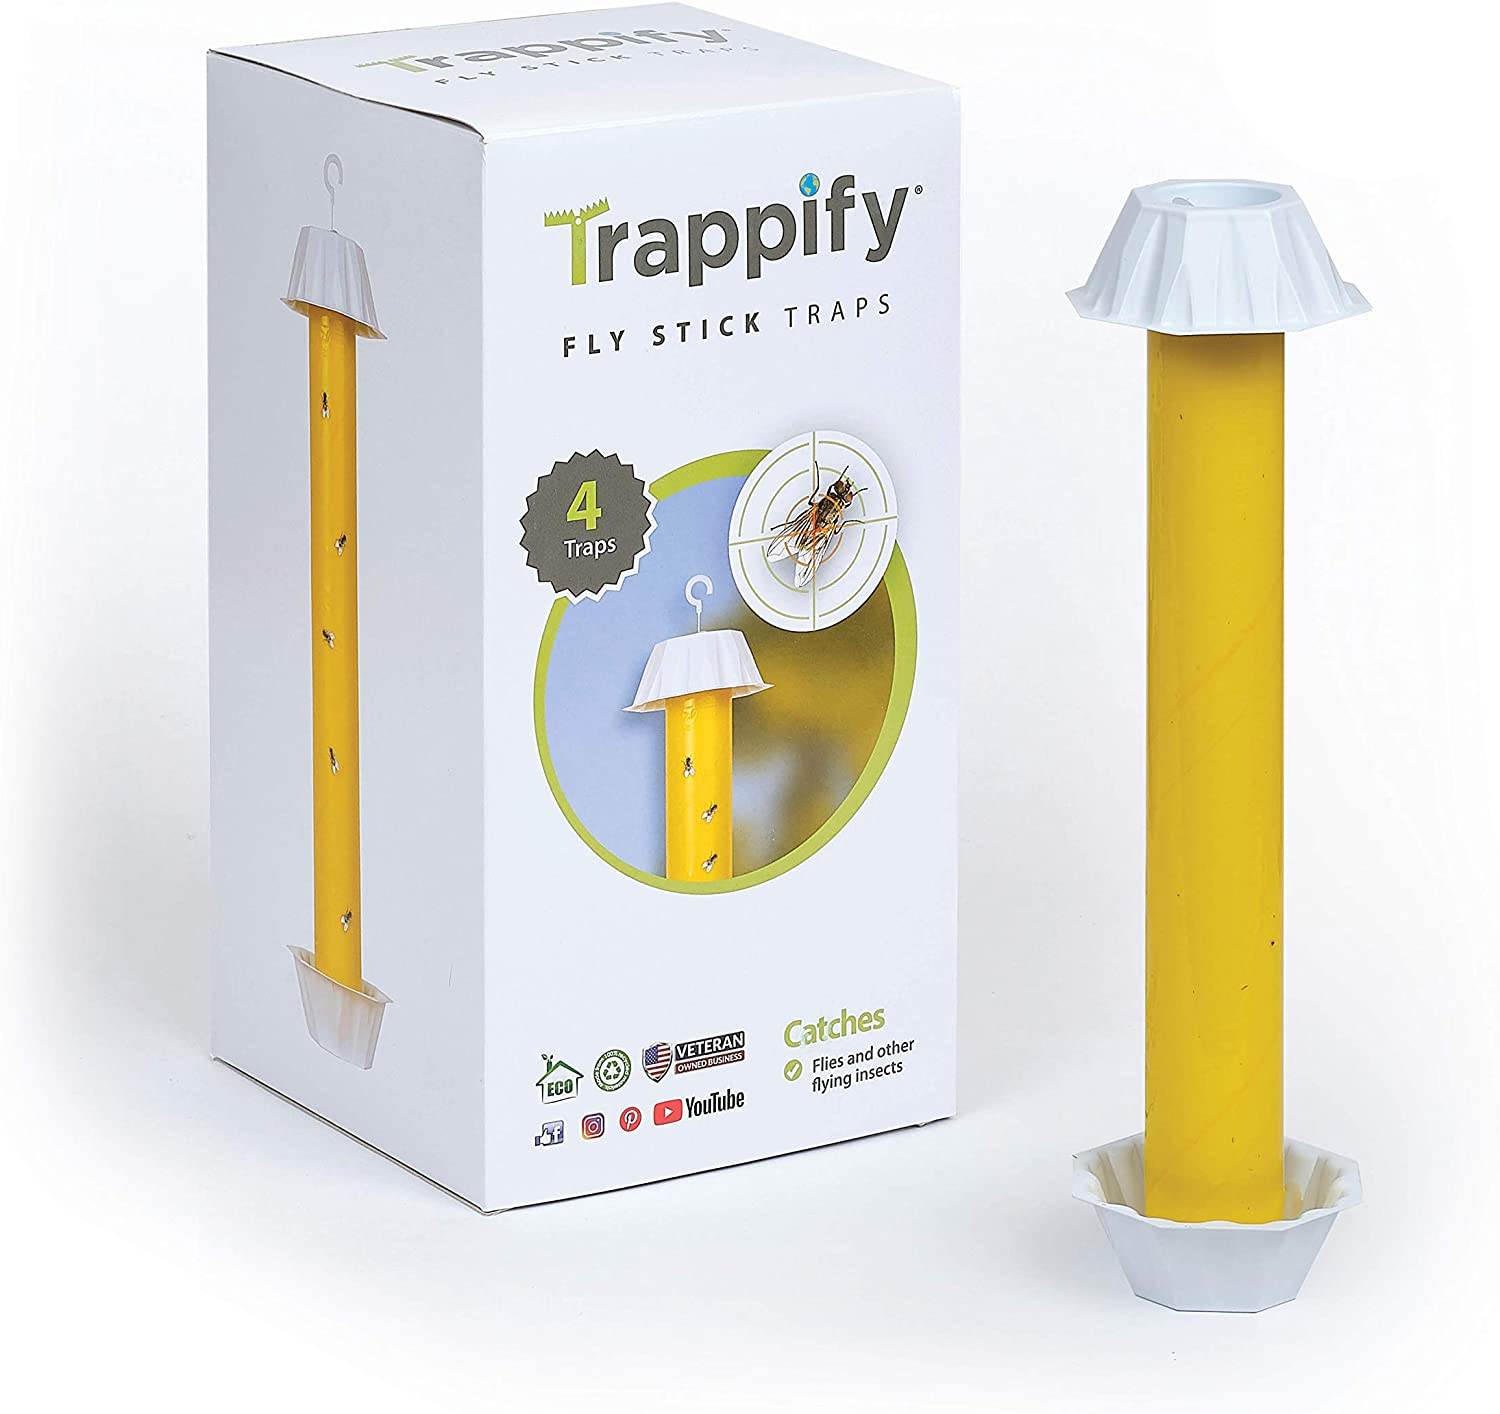 Trappify Hanging Fly Stick Traps: Indoor and Outdoor Hanging Fly Stick Trap with Hanging Hook - Fly, Gnat, Mosquito, and Flying Insect Catcher - Disposable Sticky Fly Trap for Pest Control - 4 Pack